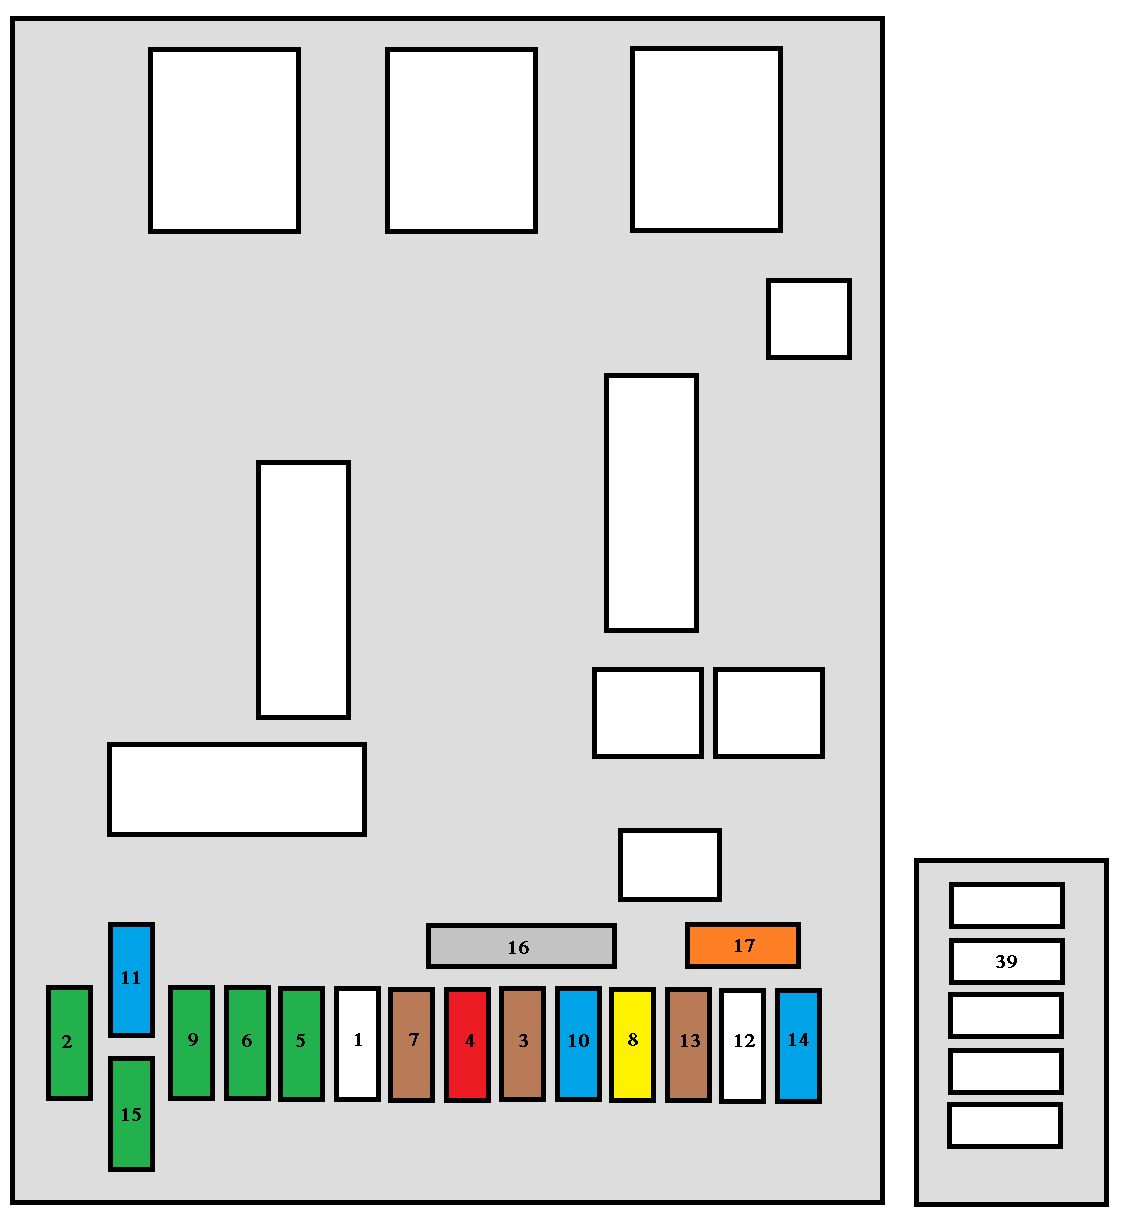 peugeot 307 fuse box problems wiring diagram blog peugeot 307 fuse box problems wiring diagrams system [ 1122 x 1220 Pixel ]